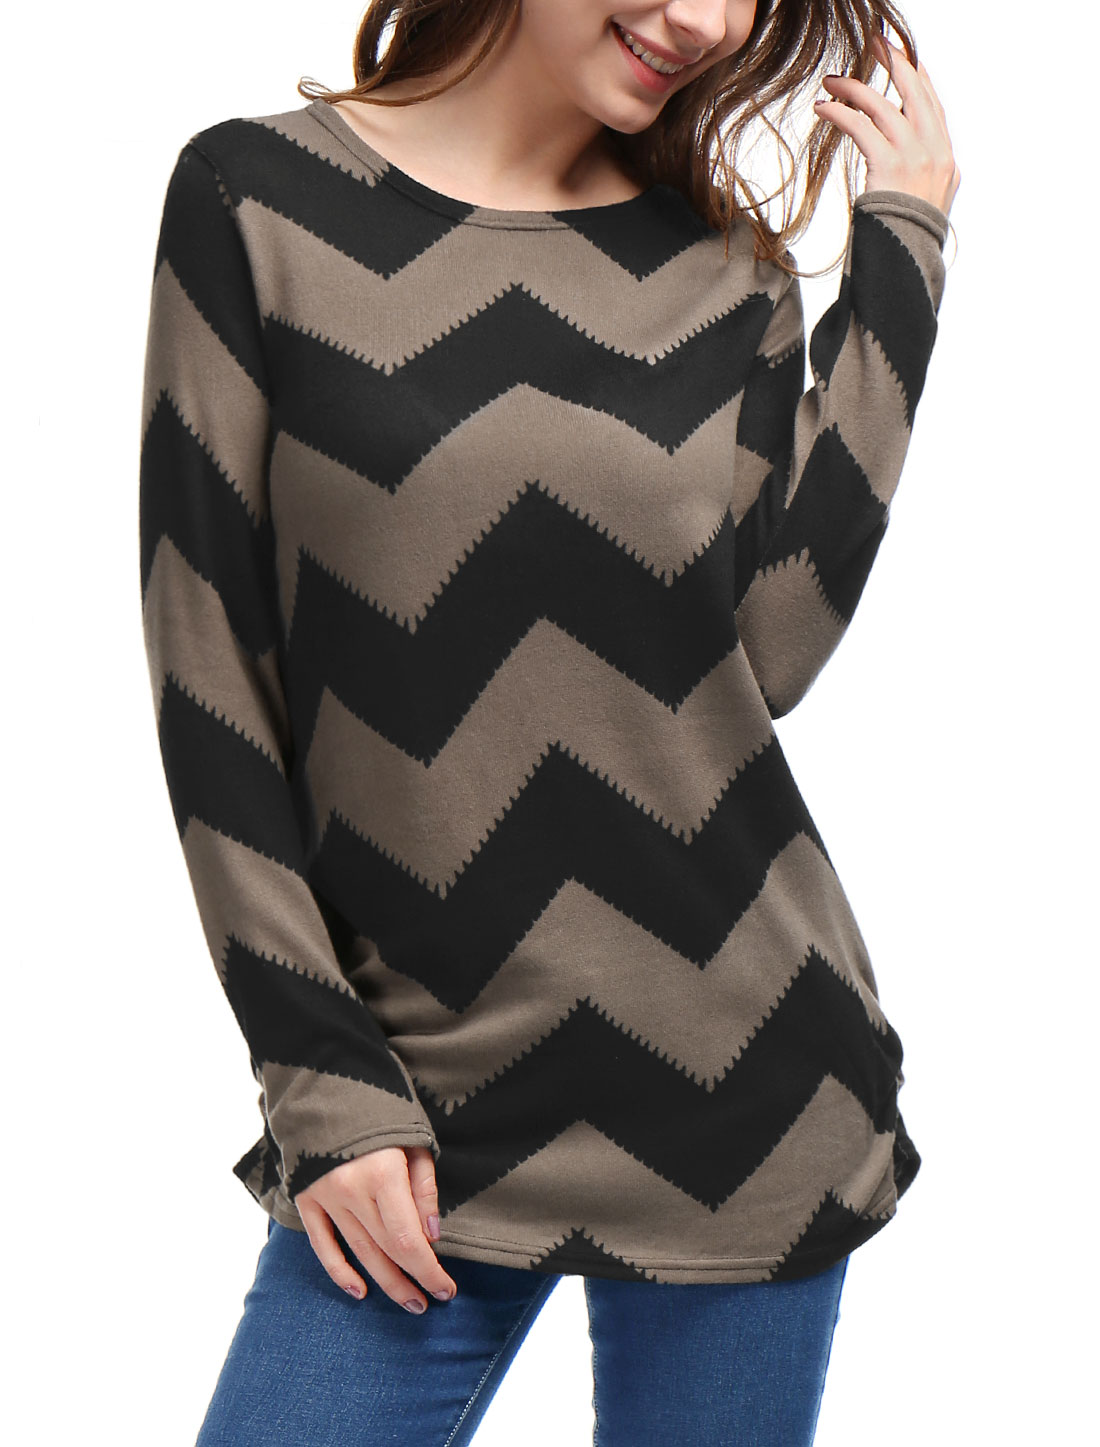 Woman Zig-Zag Pattern Knitted Relax Fit Tunic Top Black Brown XS